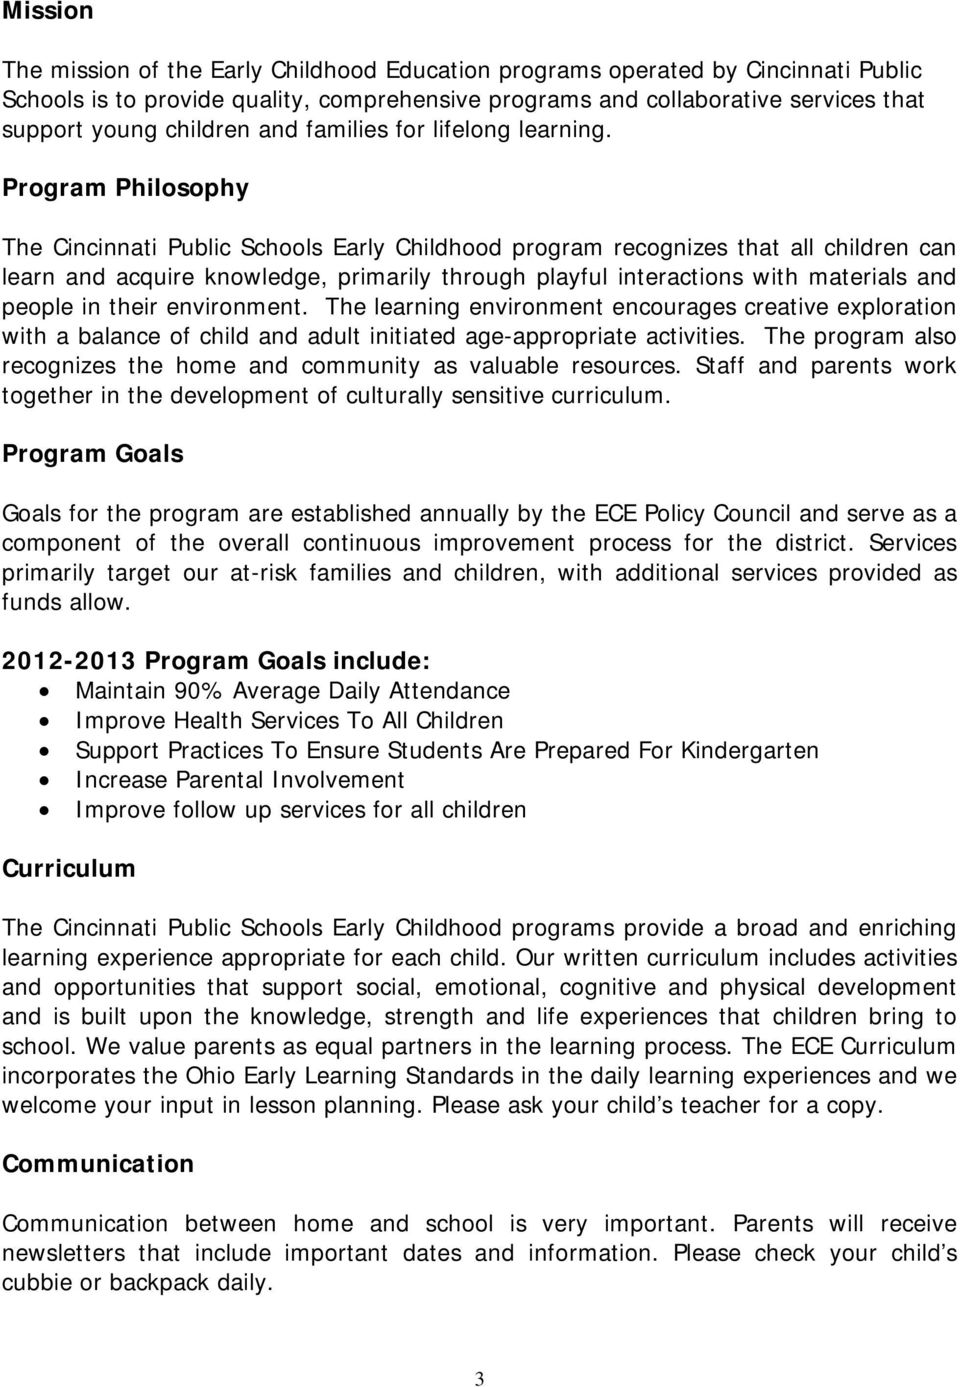 Program Philosophy The Cincinnati Public Schools Early Childhood program recognizes that all children can learn and acquire knowledge, primarily through playful interactions with materials and people